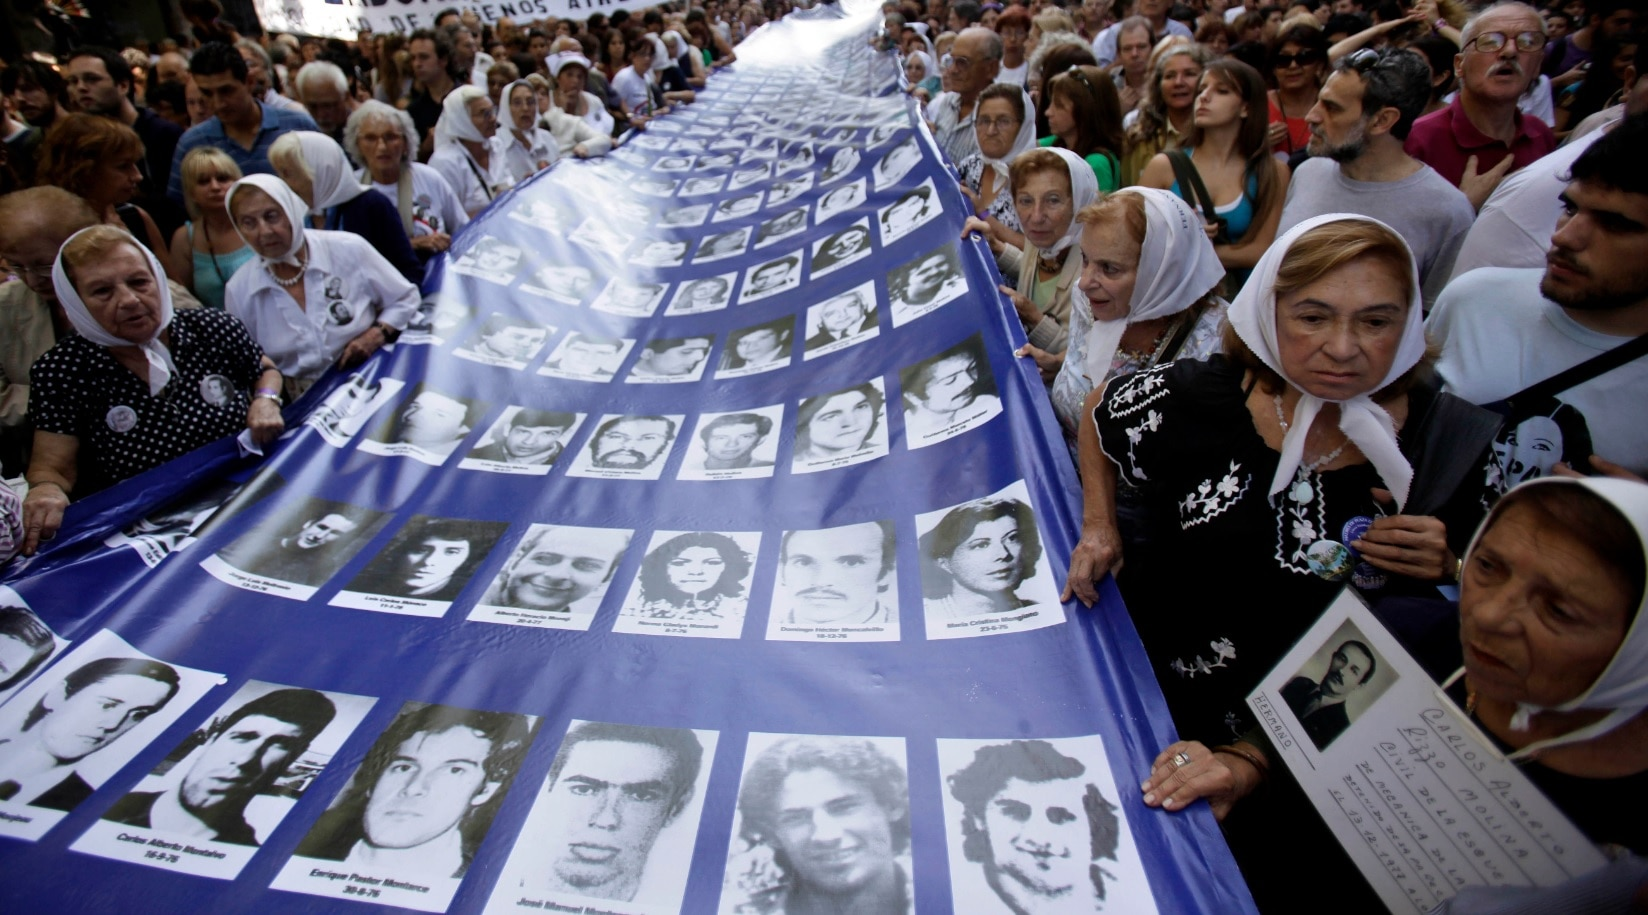 Members the Argentinian Grandmothers of the Plaza de Mayo and Mothers of the Plaza de Mayo, carrying a banner with images of people missing